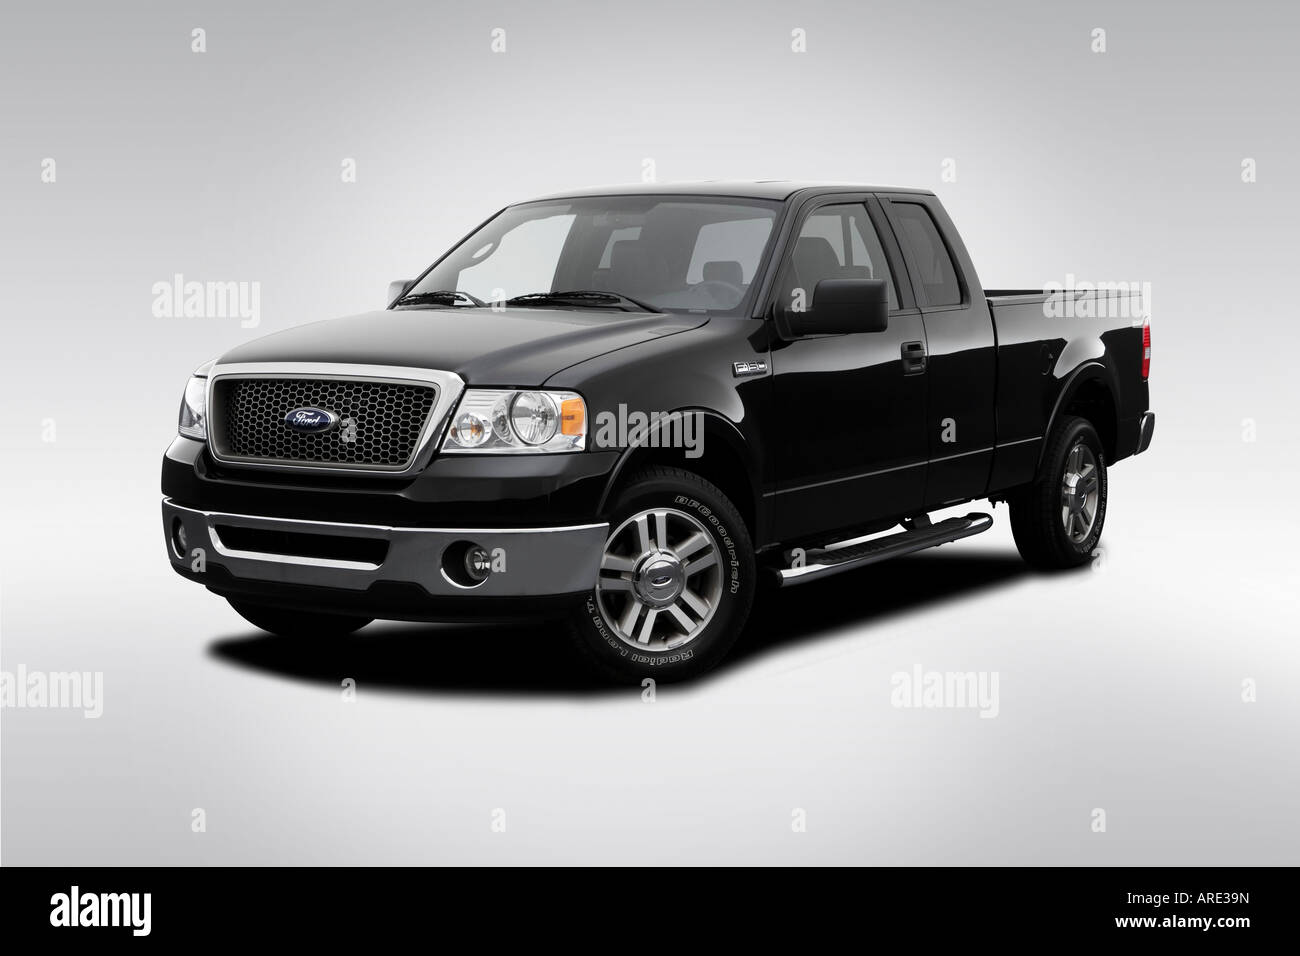 2006 ford f 150 lariat in black front angle view